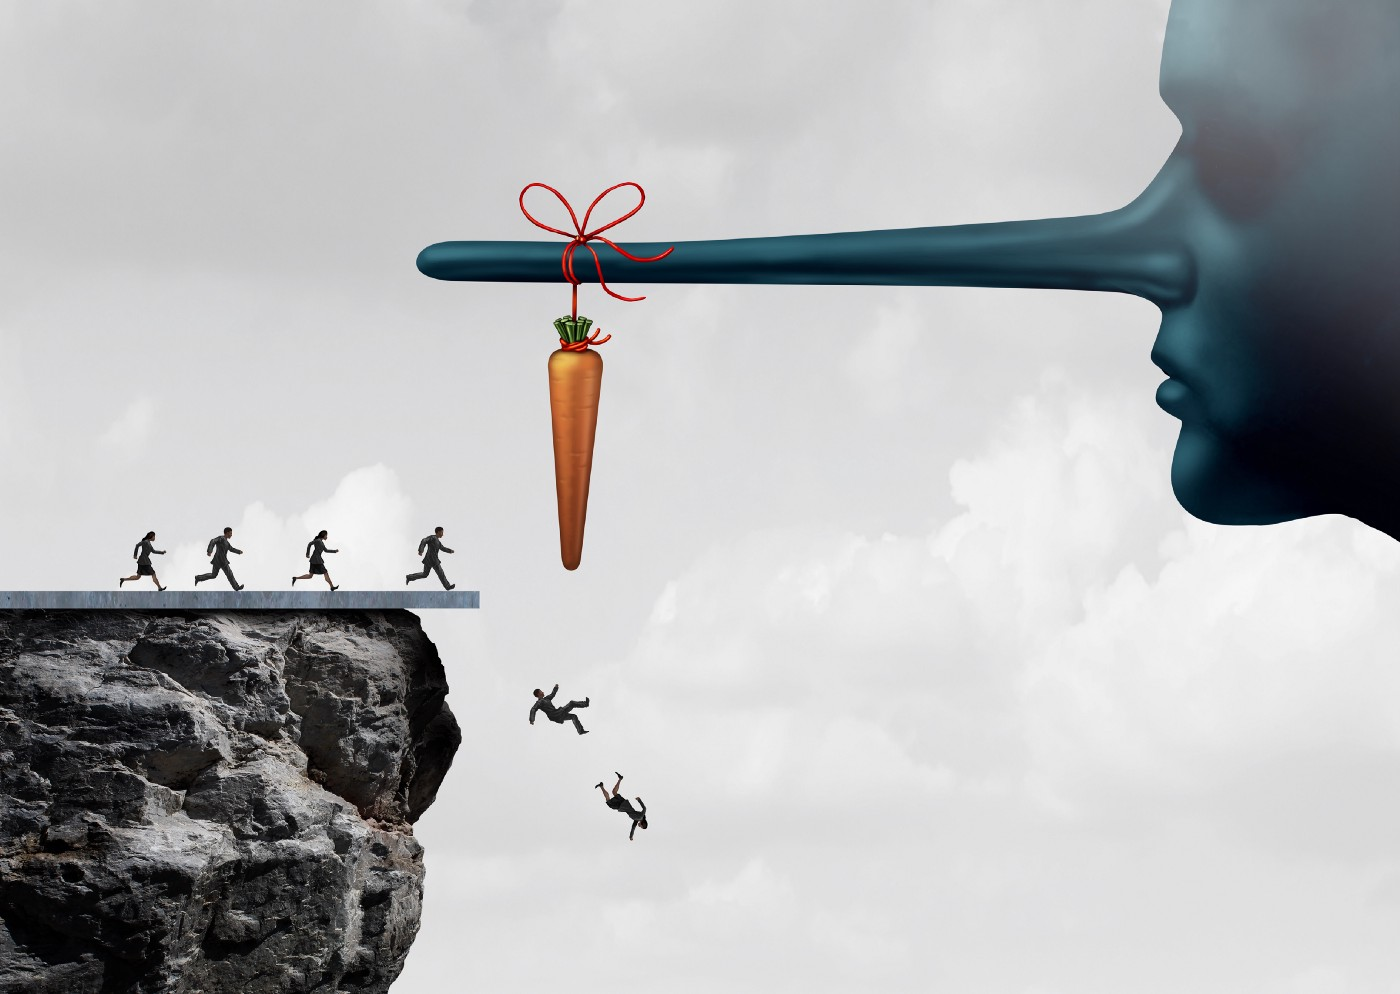 Image of people walking off a cliff